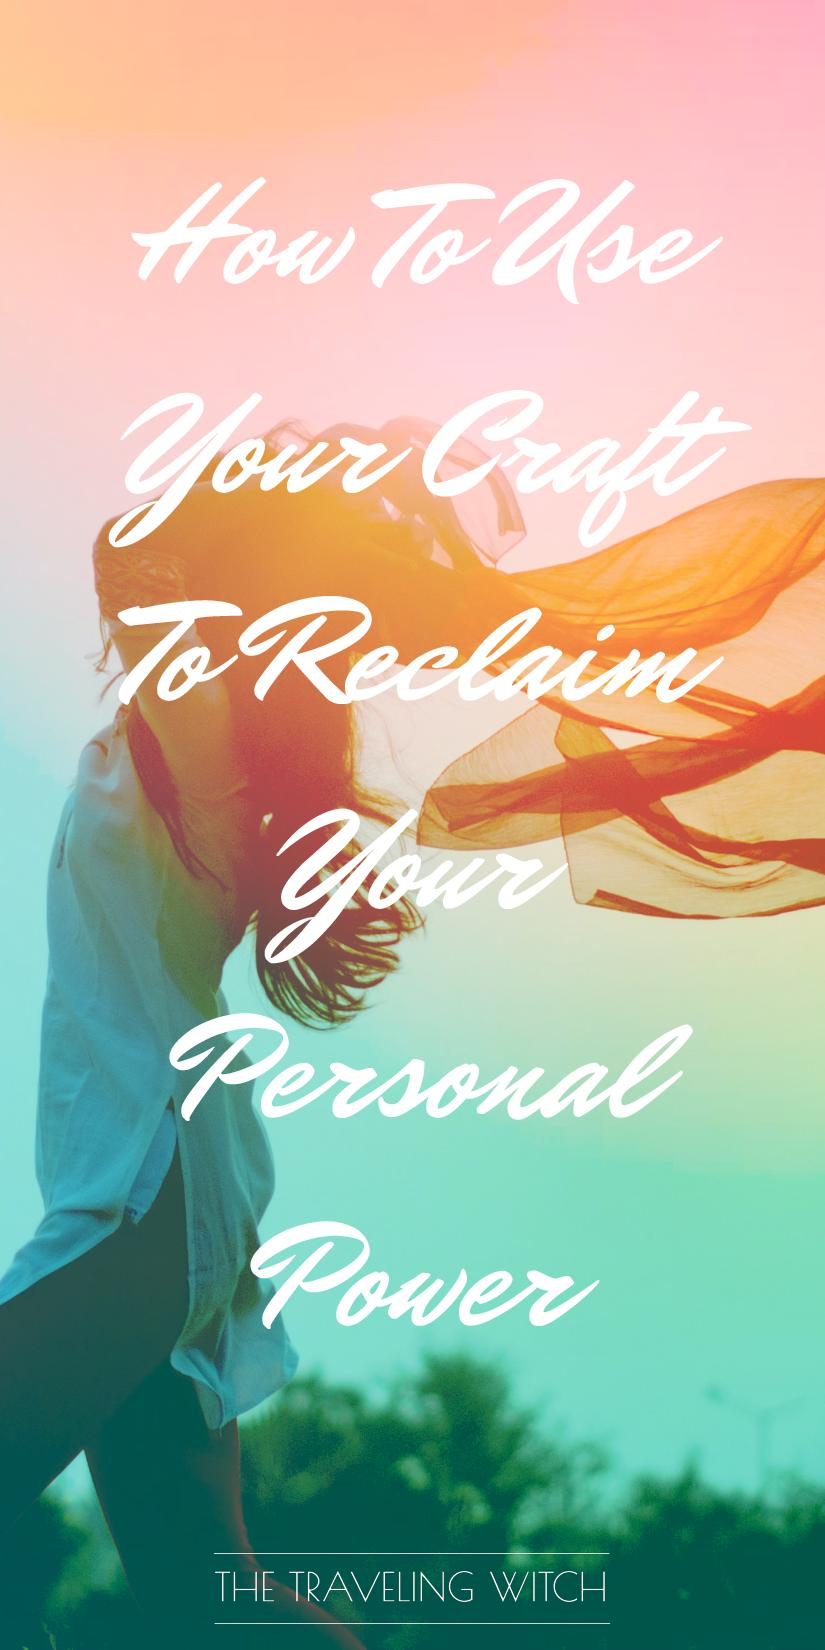 How To Use Your Craft To Reclaim Your Personal Power // Witchcraft // Magic // The Traveling Witch